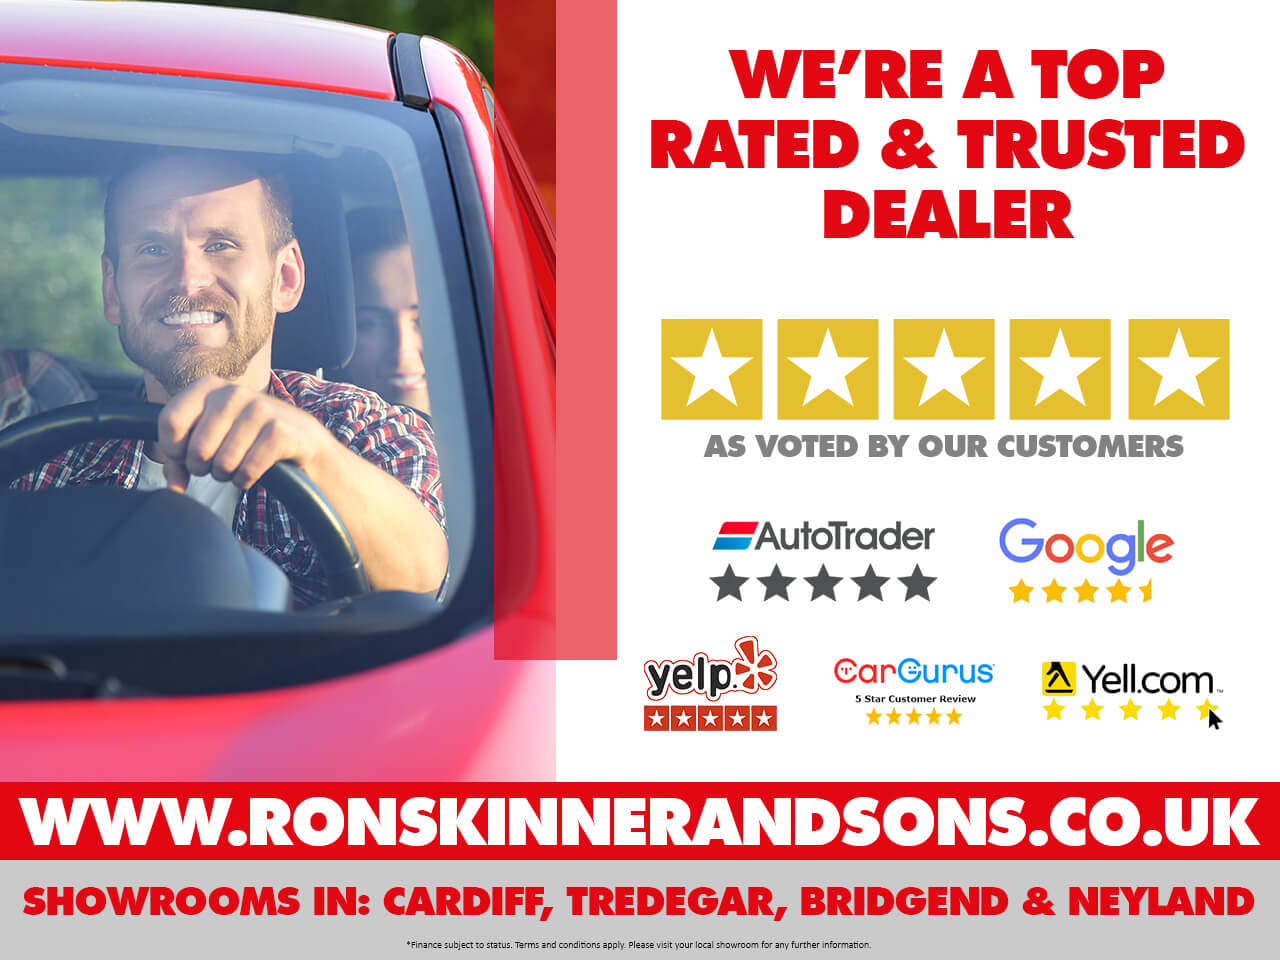 CITROEN C4 at Ron Skinner and Sons